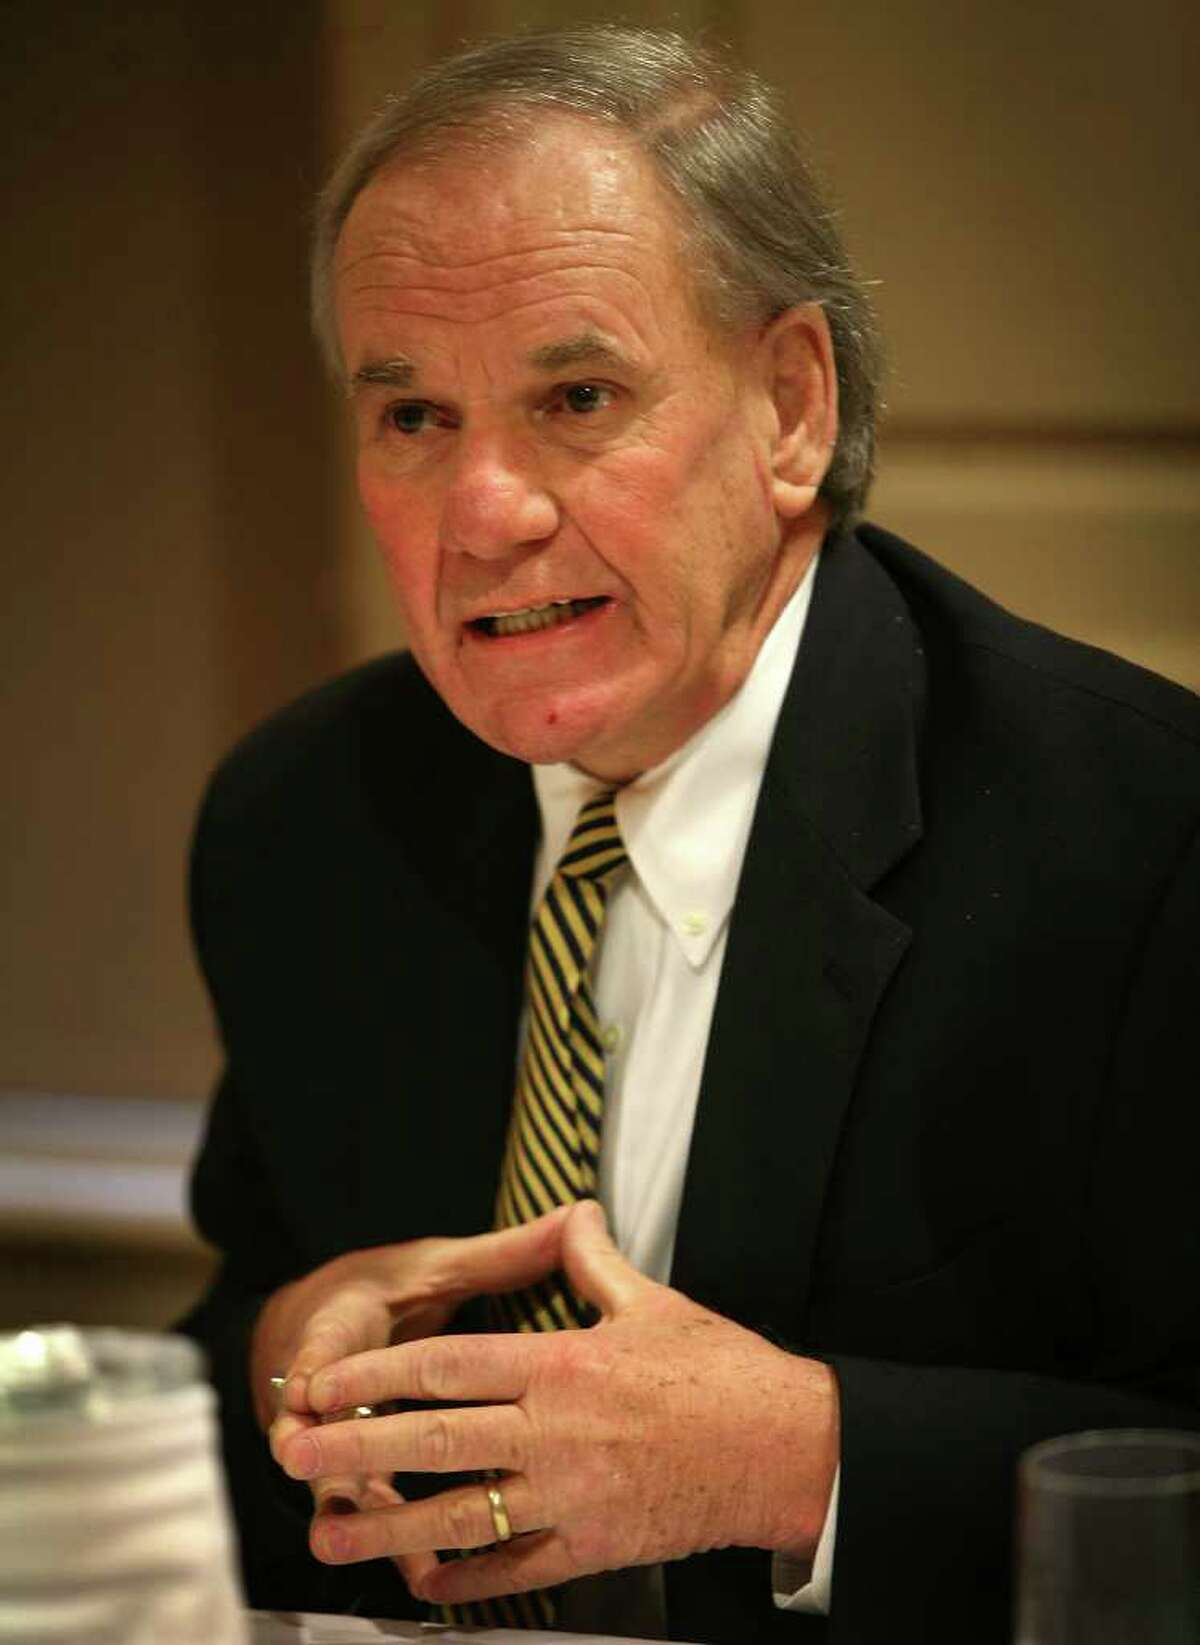 Paul Kendrick discusses Haitian sexual abuse by Douglas Perlitz during a press conference announcing civil lawsuits at the Delmar Hotel in Southport on Thursday, January 5, 2012.